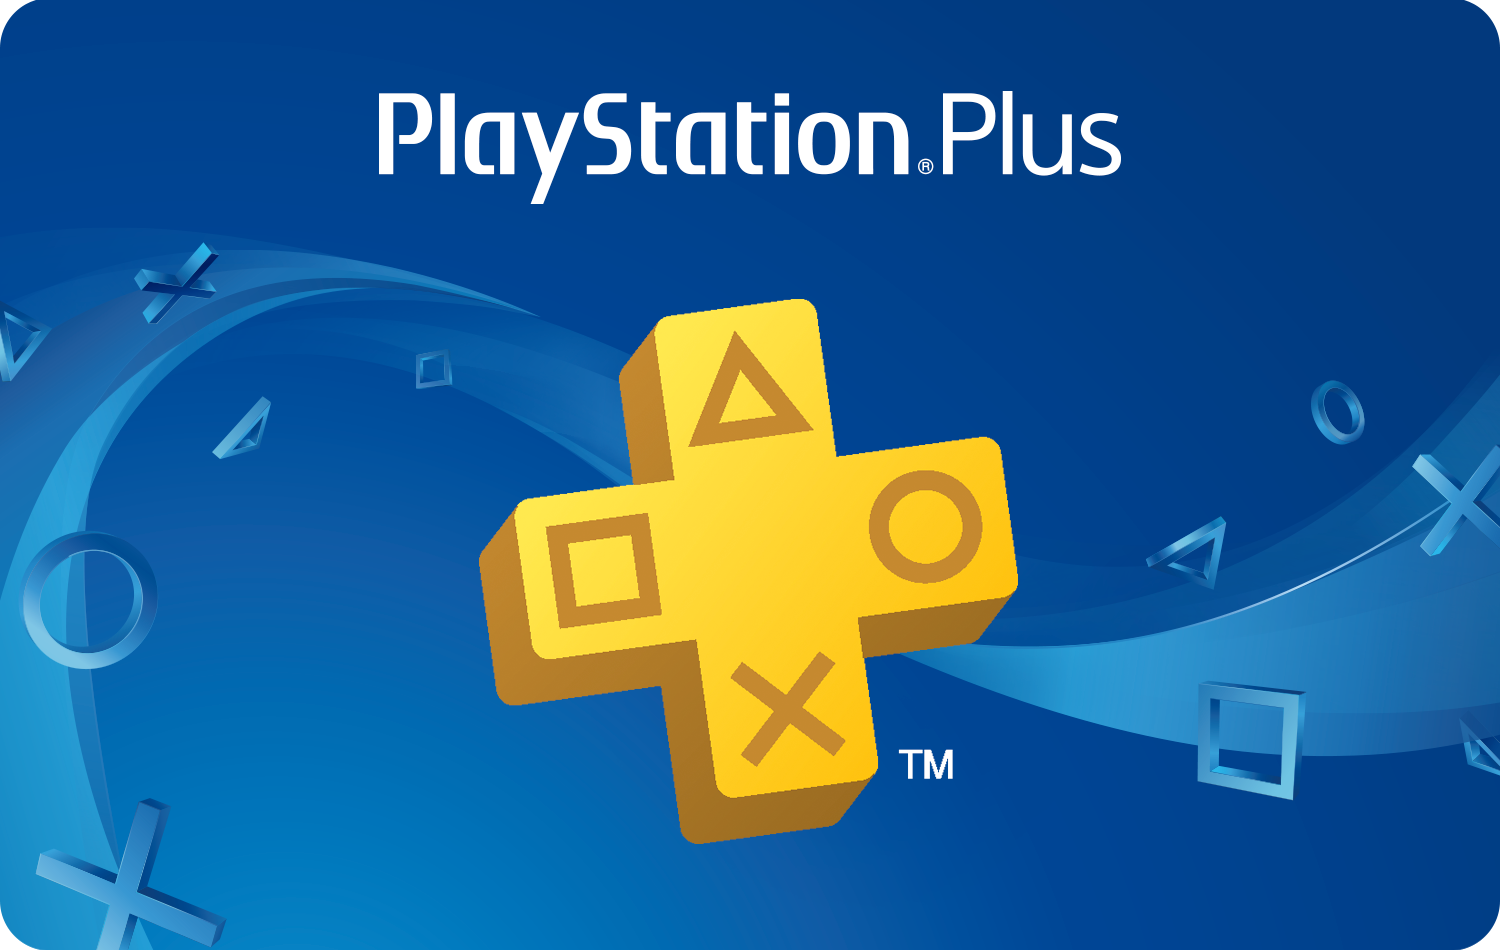 PlayStation Plus Announces Free Games for May